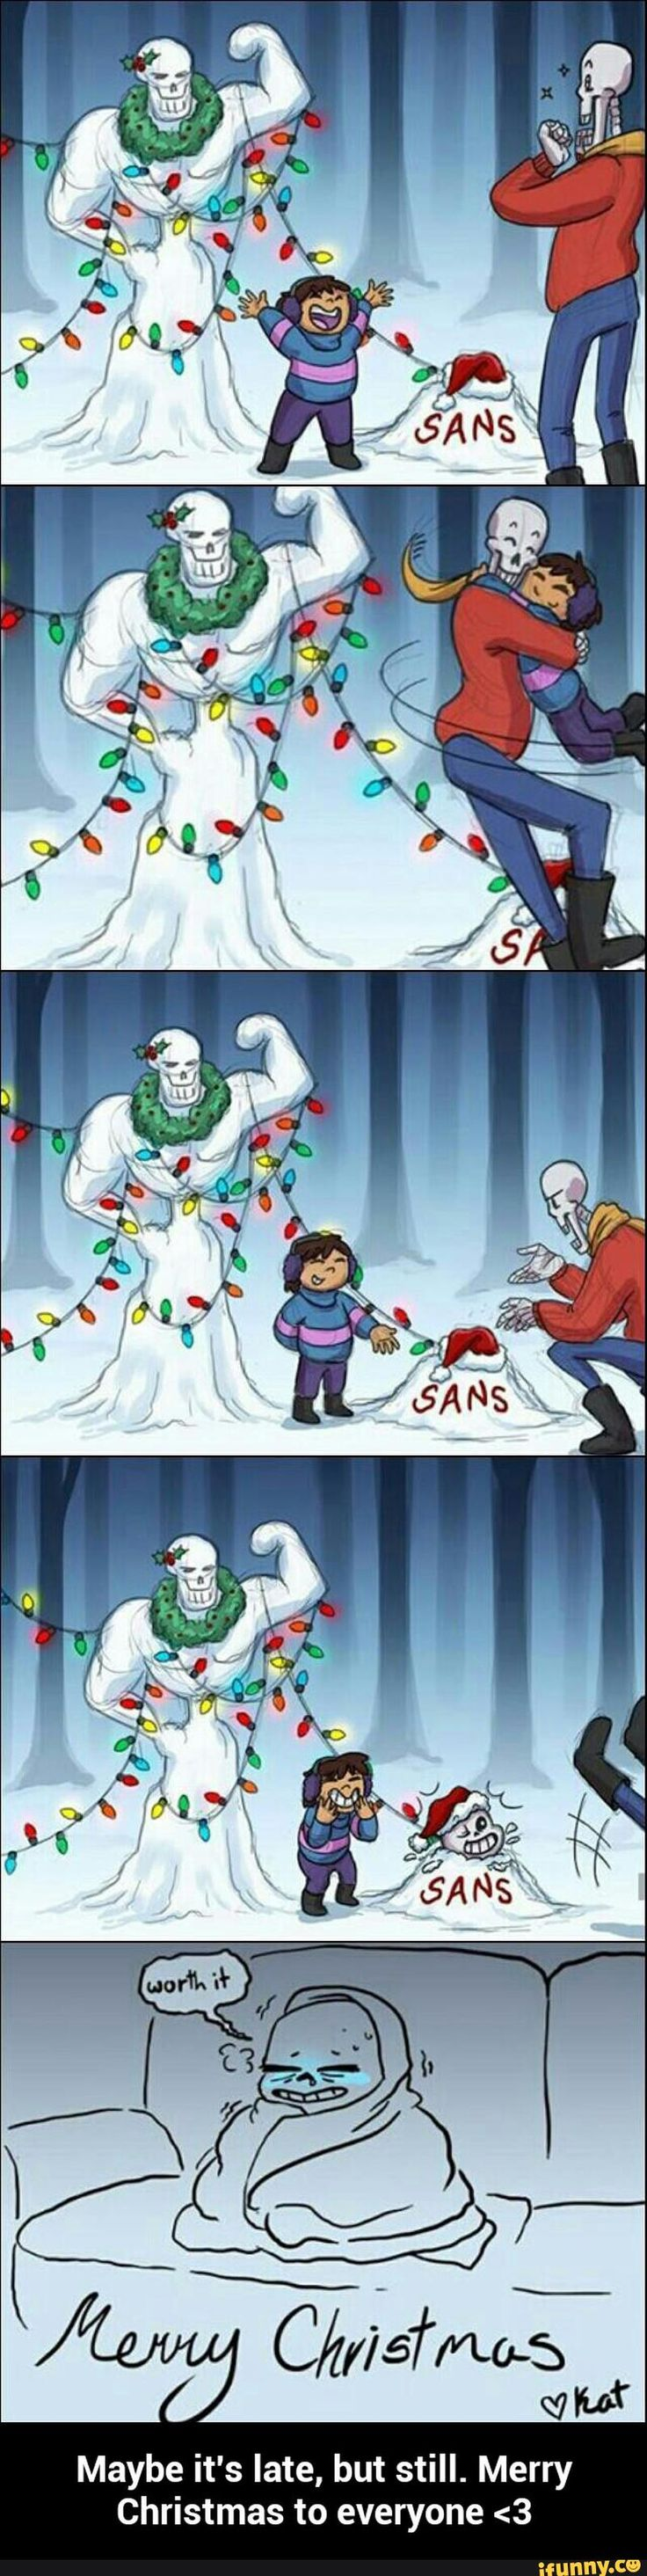 Maybe it's late, but still. Merry Christmas to everyone <3